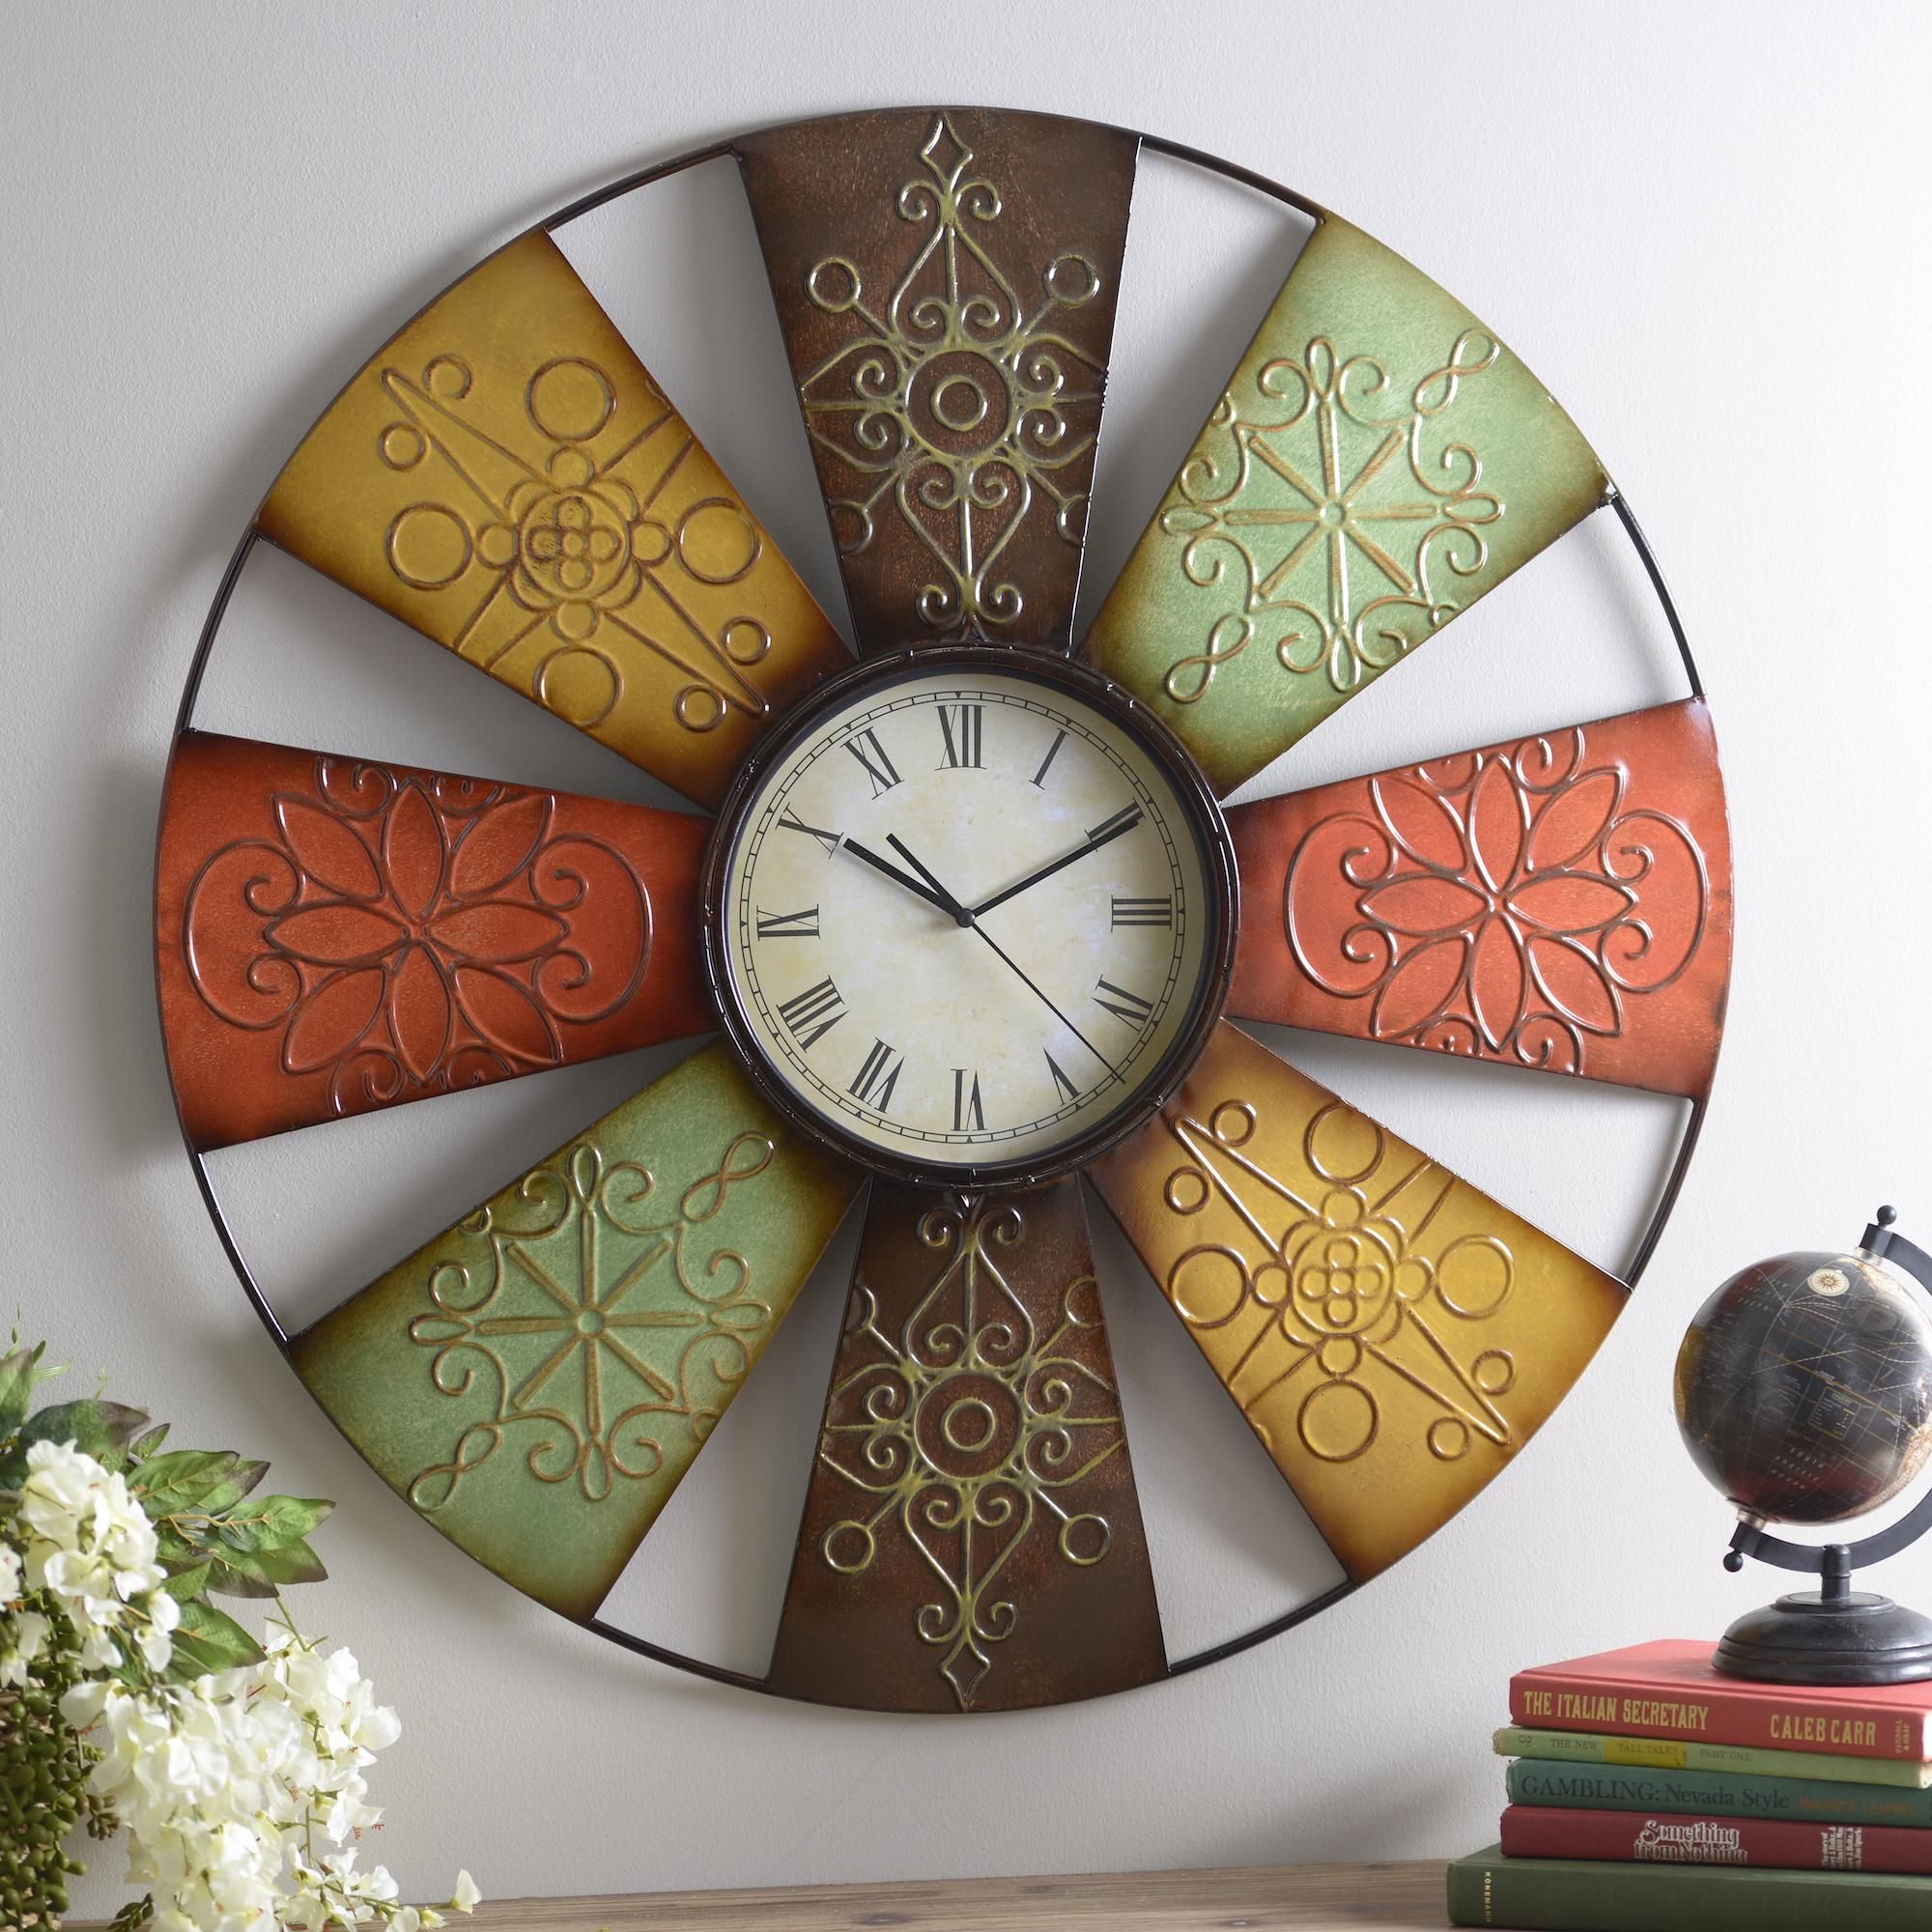 Kirkland's Wall Clocks Are Both Functional And Decorative